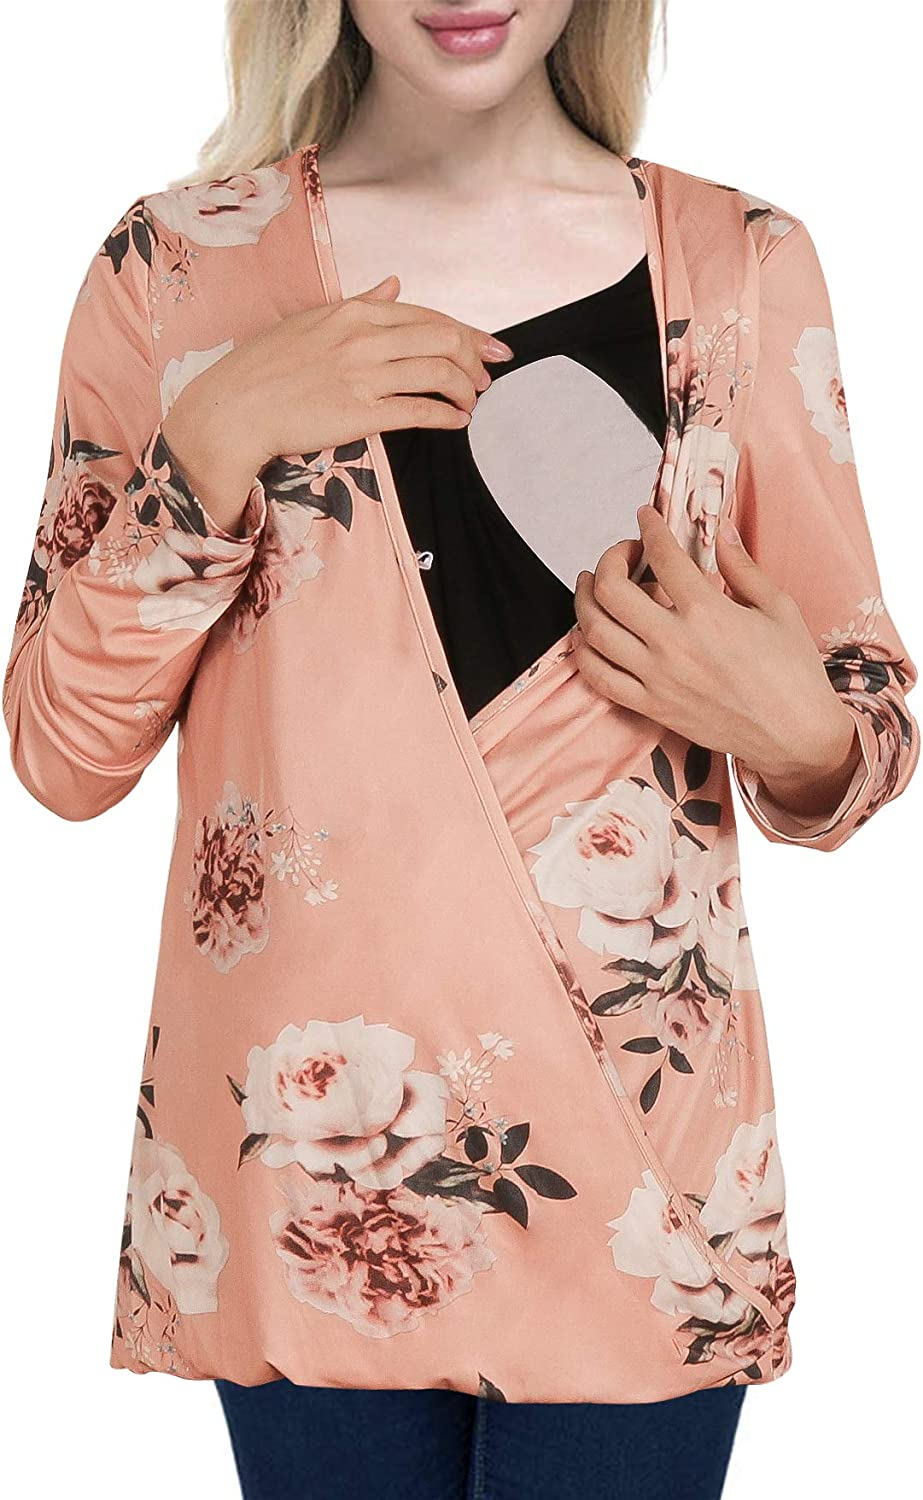 Cinery Women's Long Sleeve Nursing Tops Floral Wrap Front Pregnancy Shirts